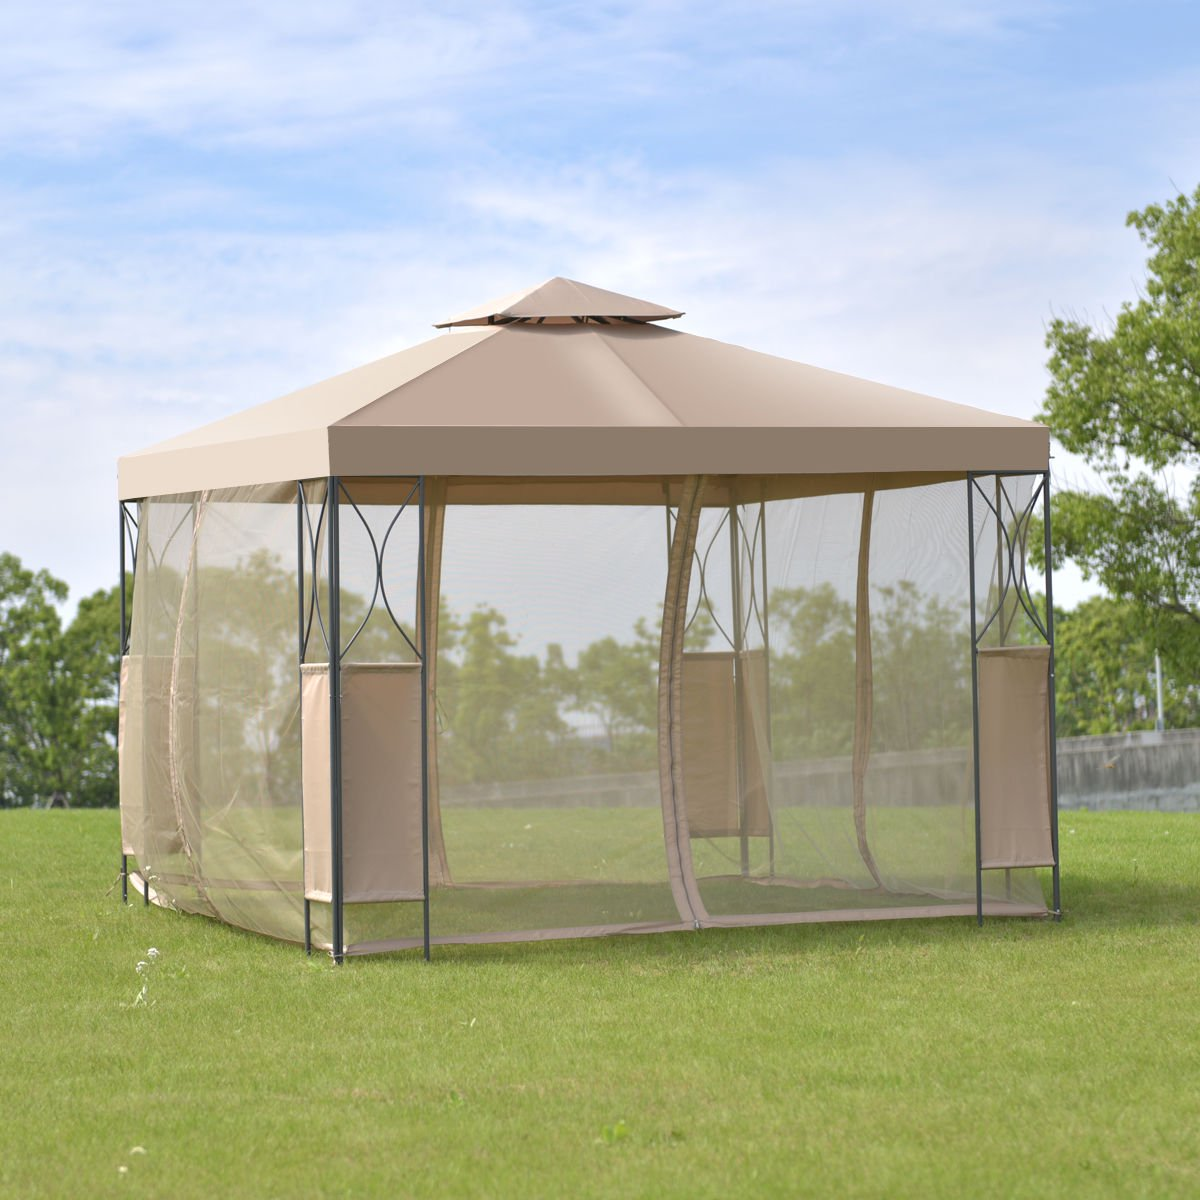 Costway 2-Tier 10u0027x10u0027 Gazebo Canopy Tent Shelter Awning Steel Patio Garden & Costway 2-Tier 10u0027x10u0027 Gazebo Canopy Tent Shelter Awning Steel ...